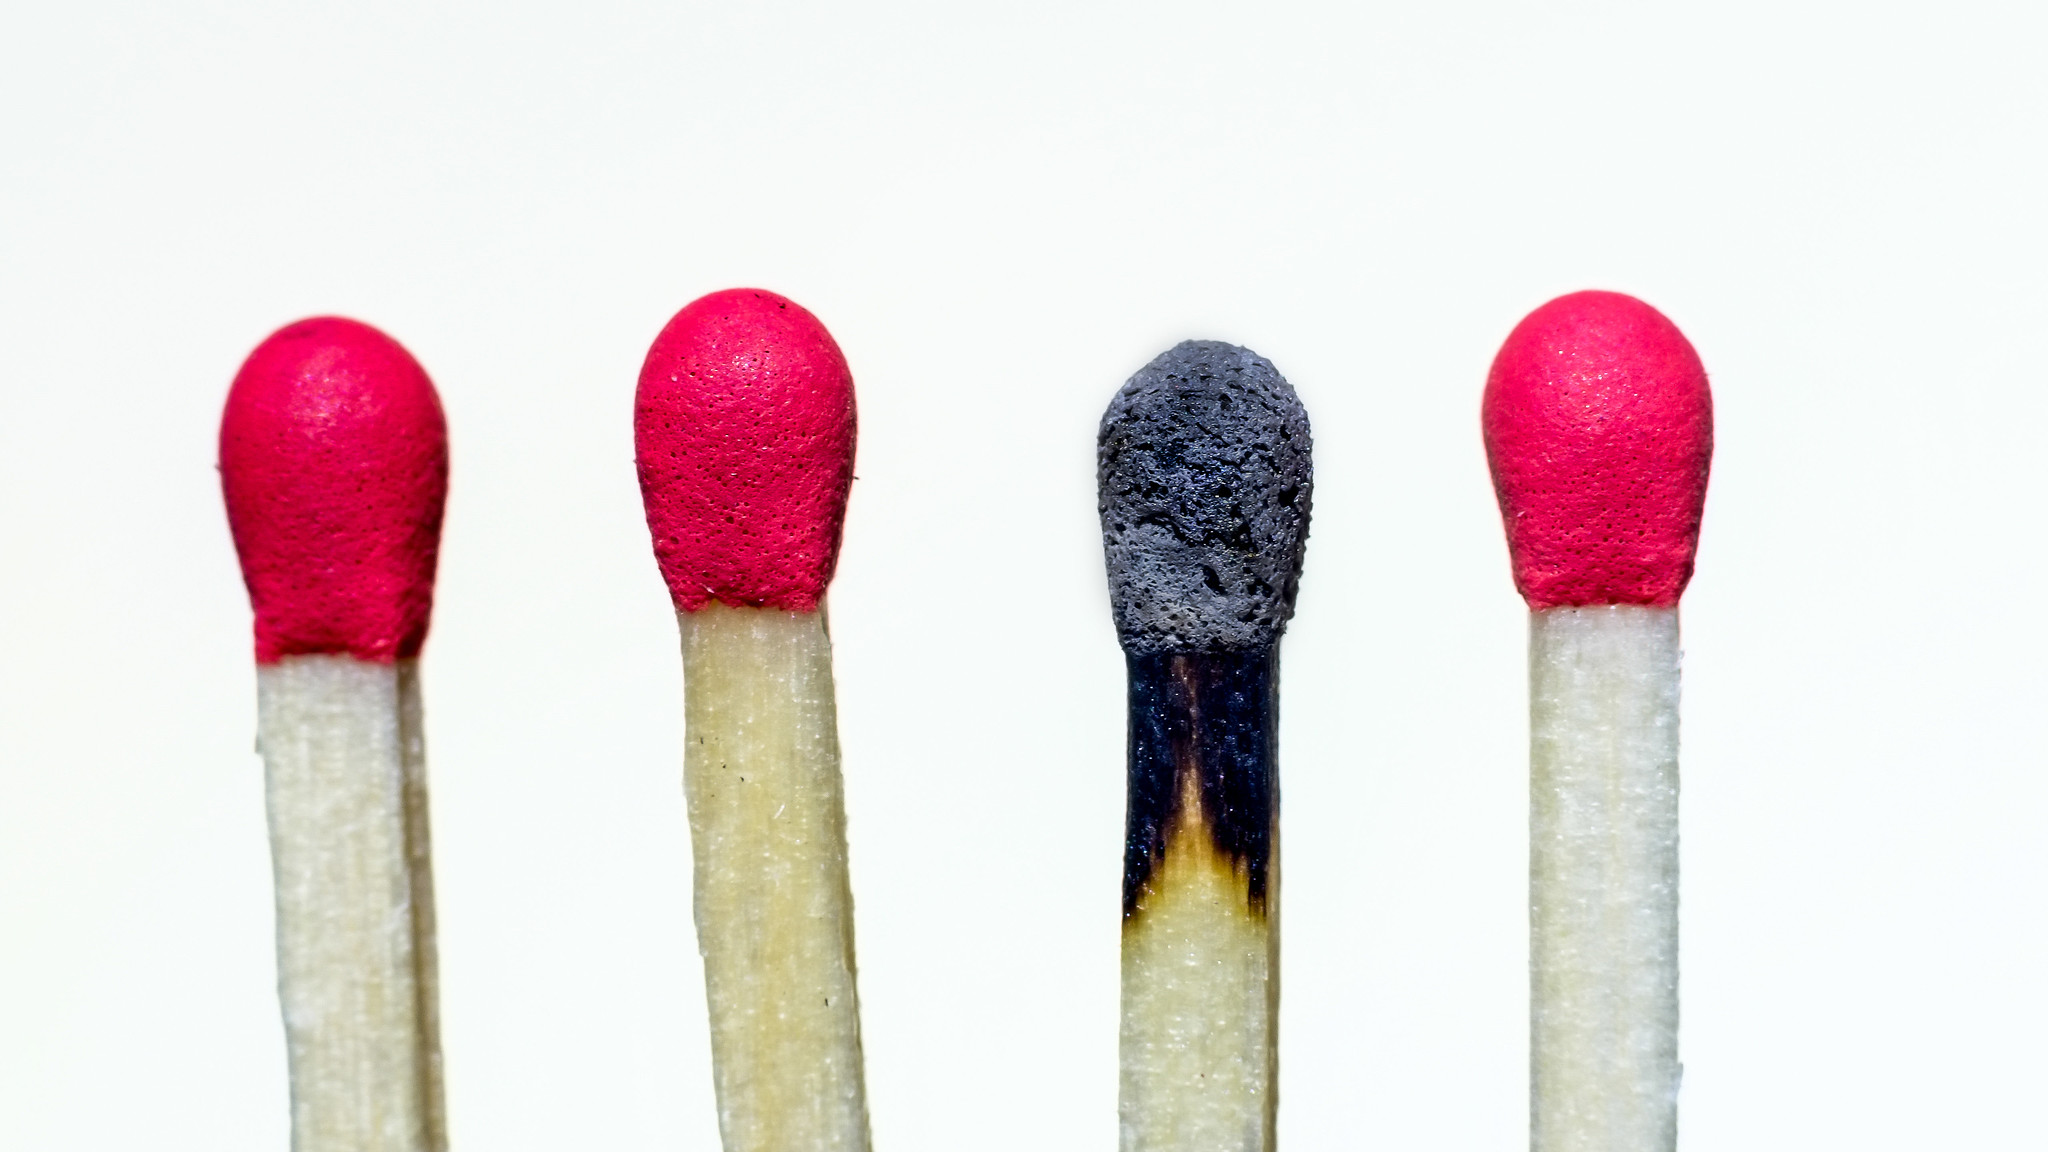 Image of 4 matches against a white background. One of the matches is already burnt.